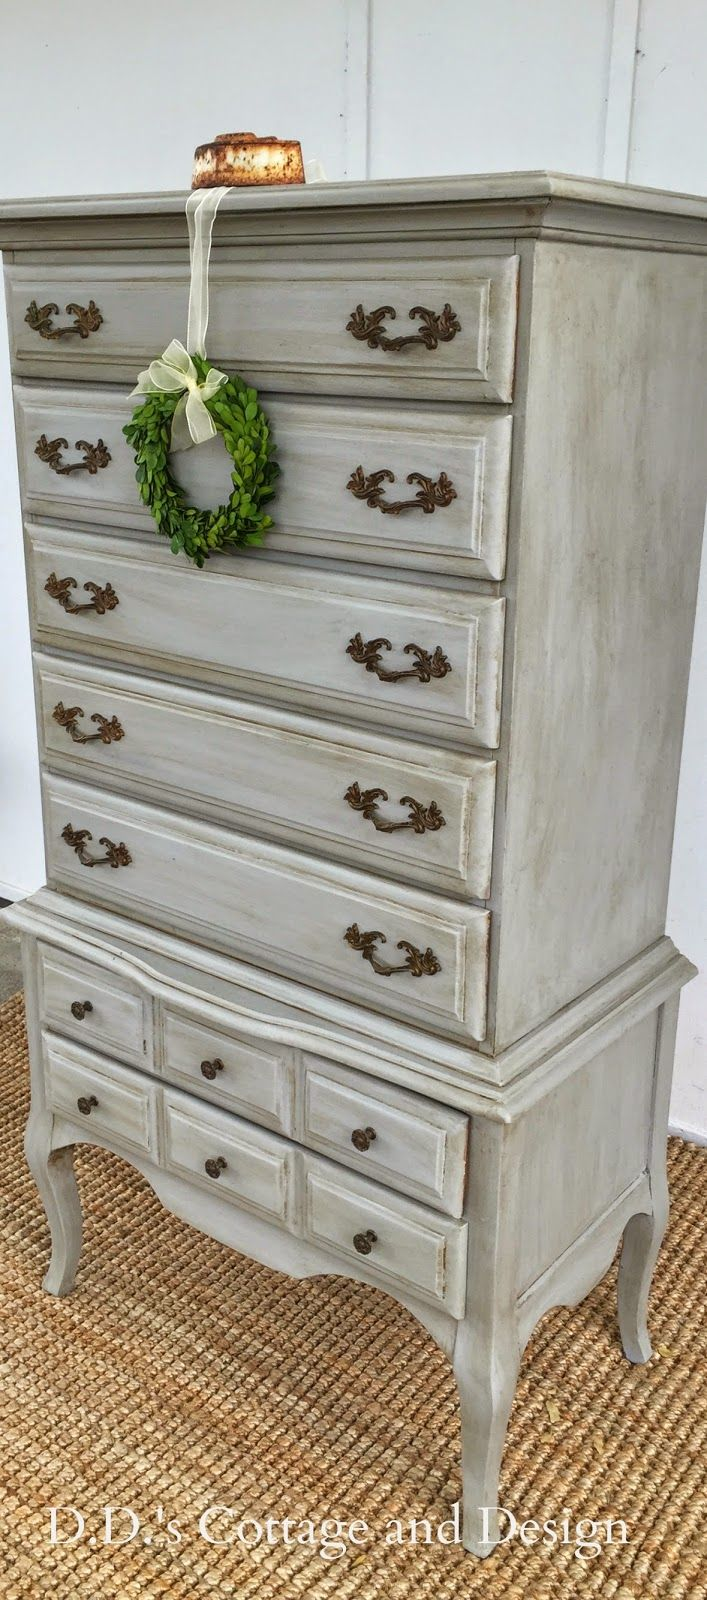 D d 39 s cottage and design grey french provincial chest on - Average price to paint a bedroom ...